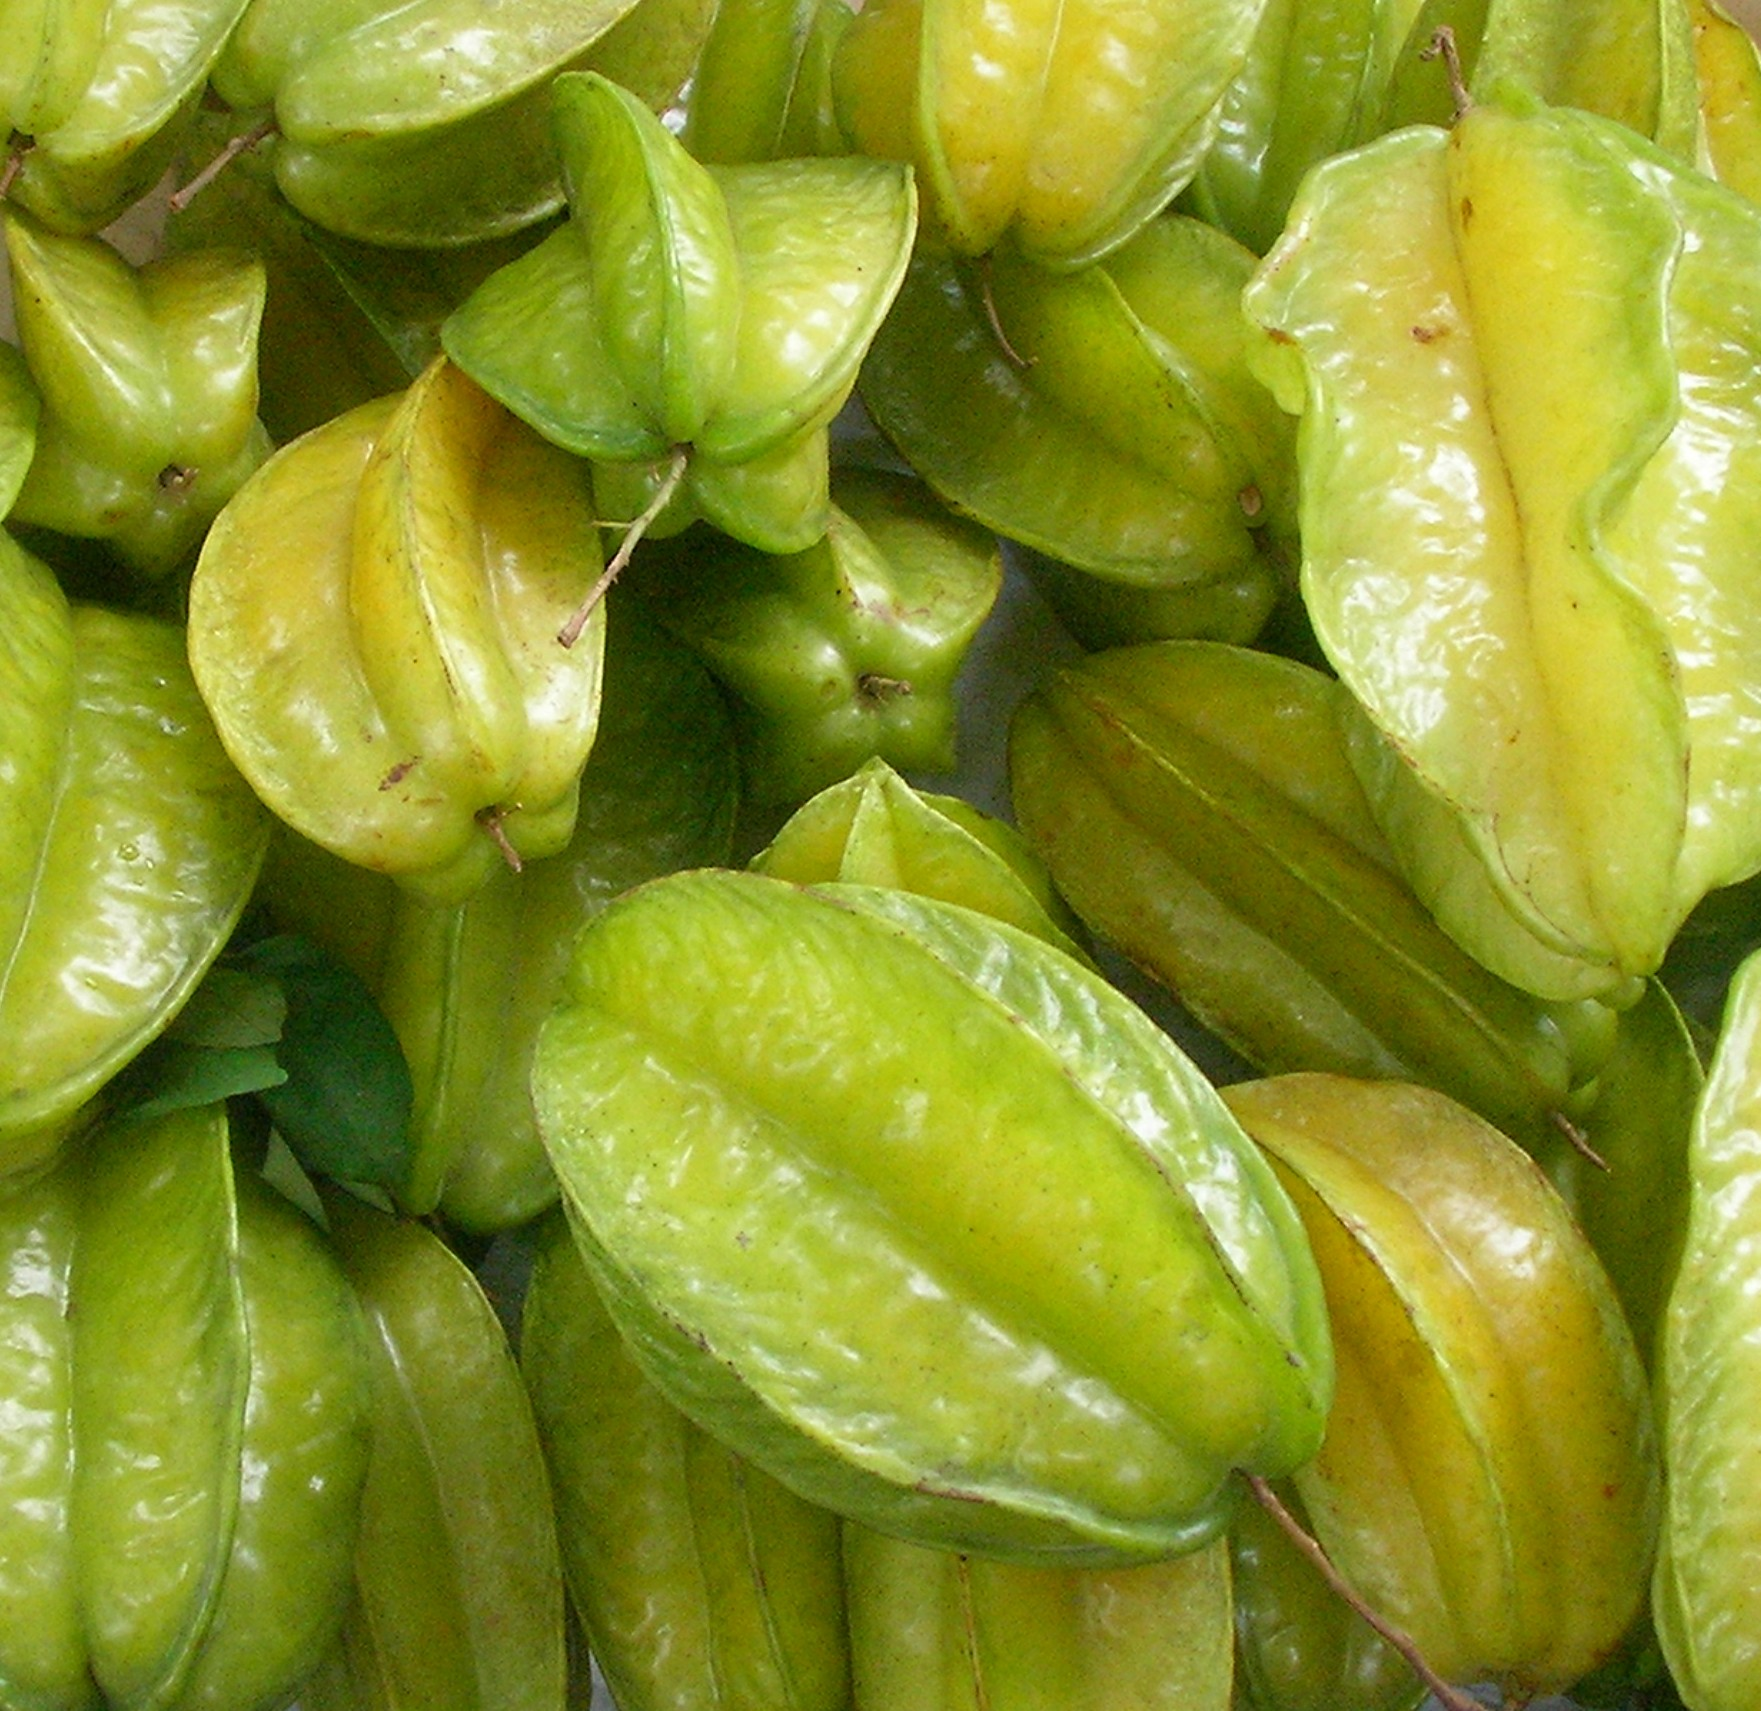 Starfruit, image from wikipedia